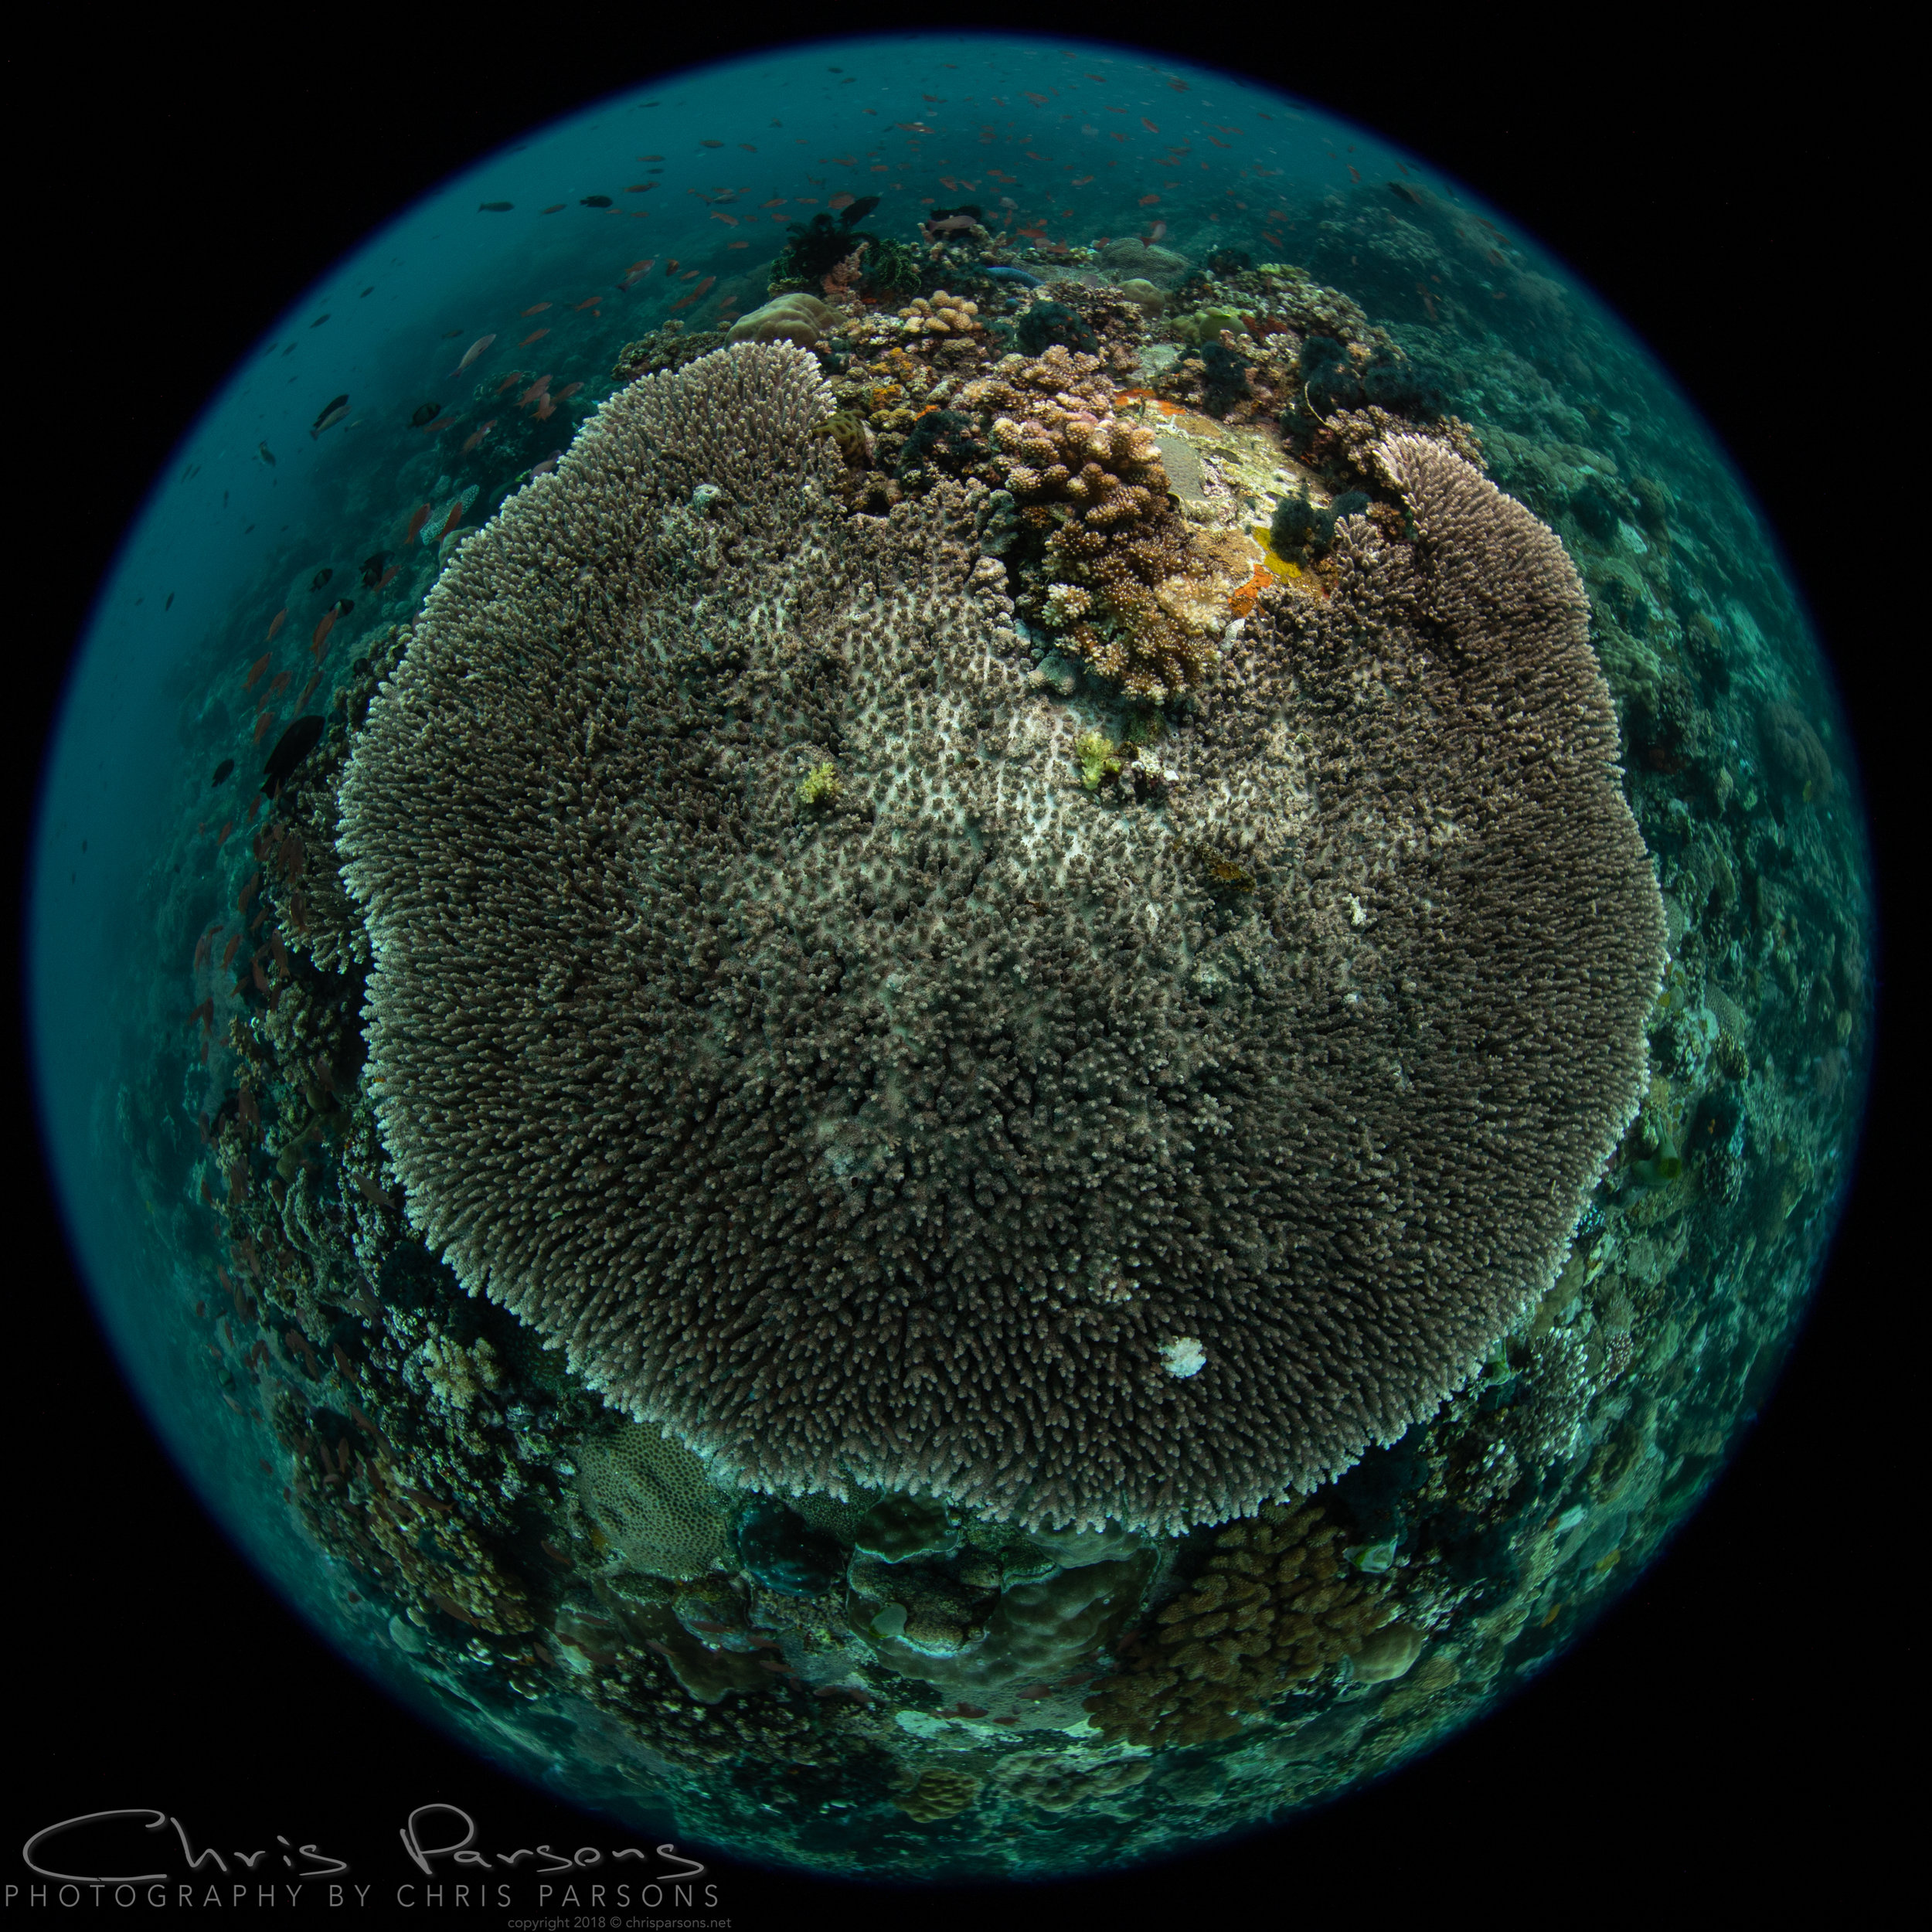 Table coral, Verde Island. Shot with the Canon 5D Mark IV, Canon 8-15mm fisheye lens at 8mm, Nauticam housing and Zen DP-100 mini dome with removable shade.